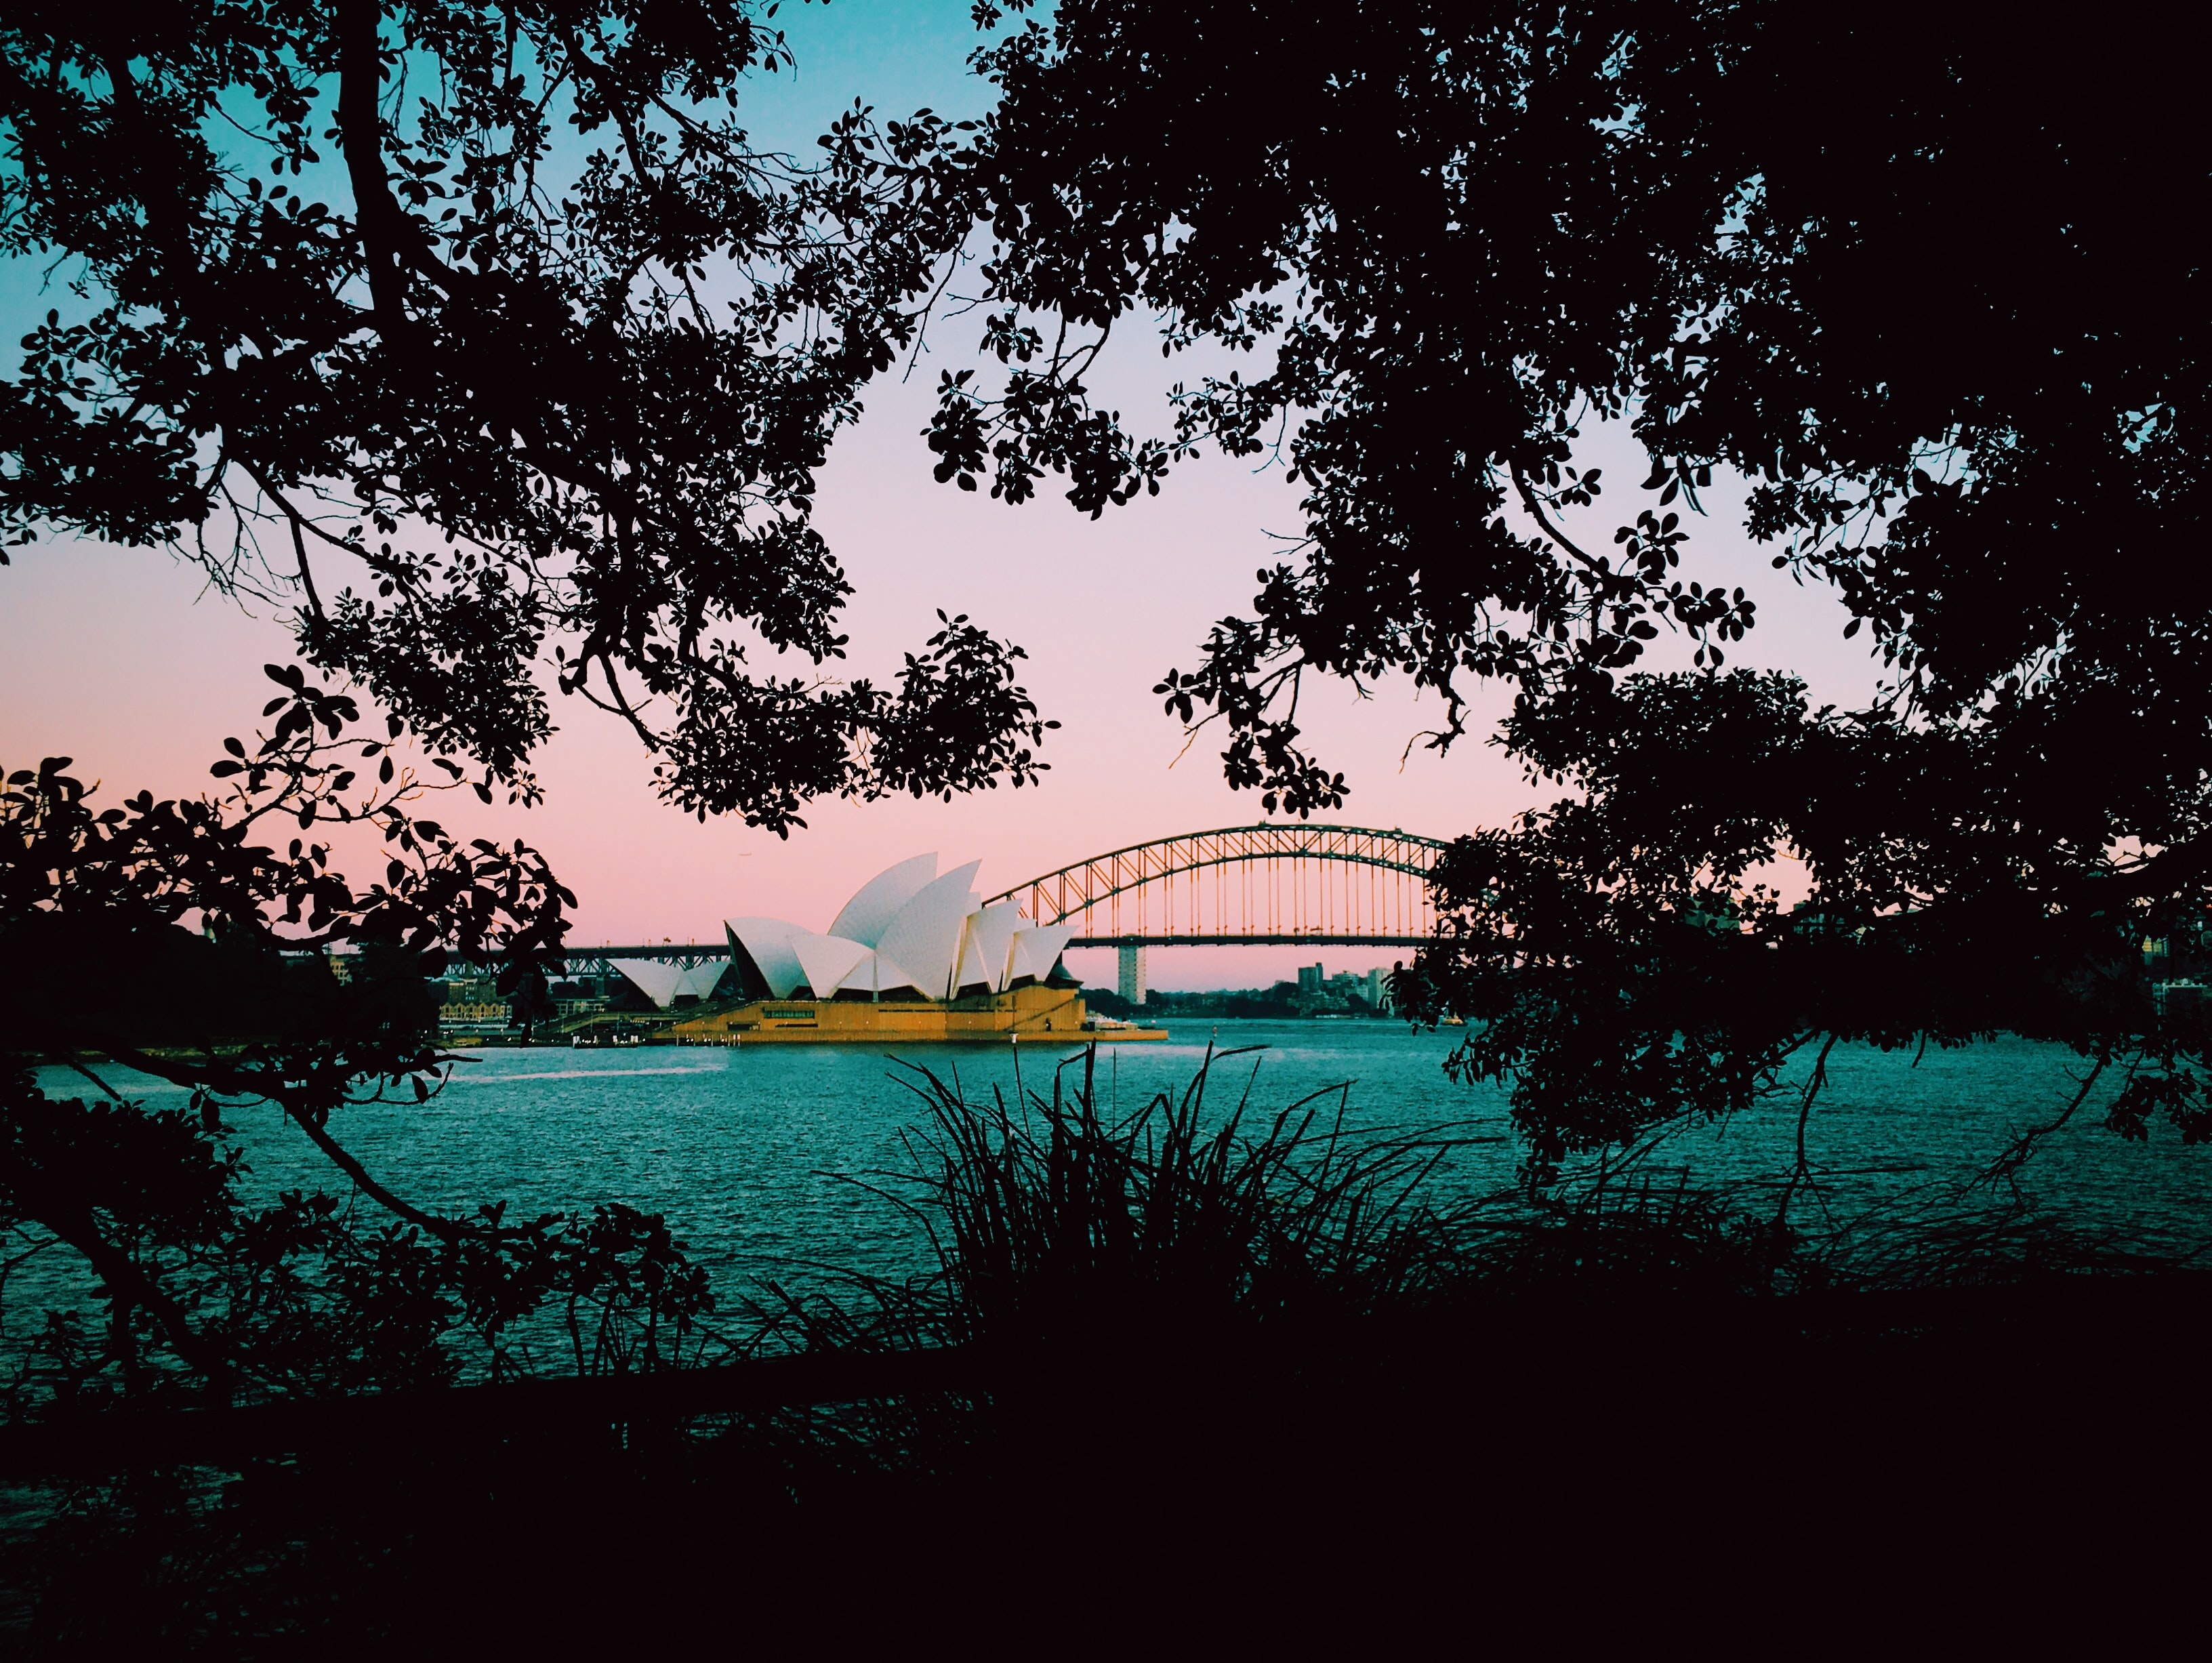 silhouette photo of trees with a view of Sydney Opera House